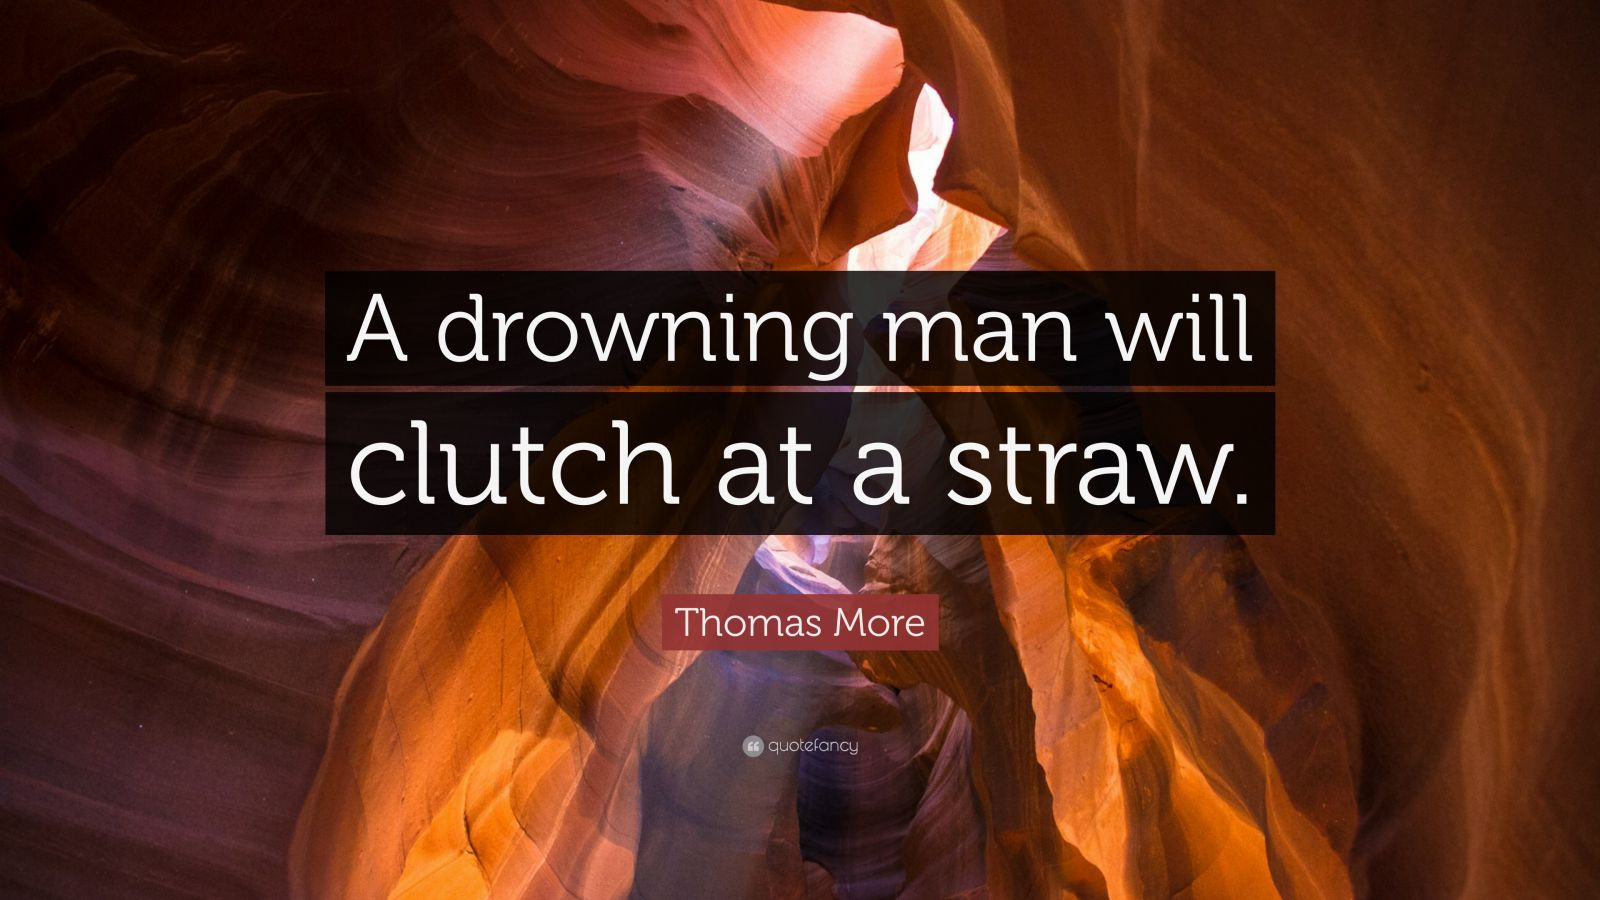 a drowning man catches at a straw in urdu